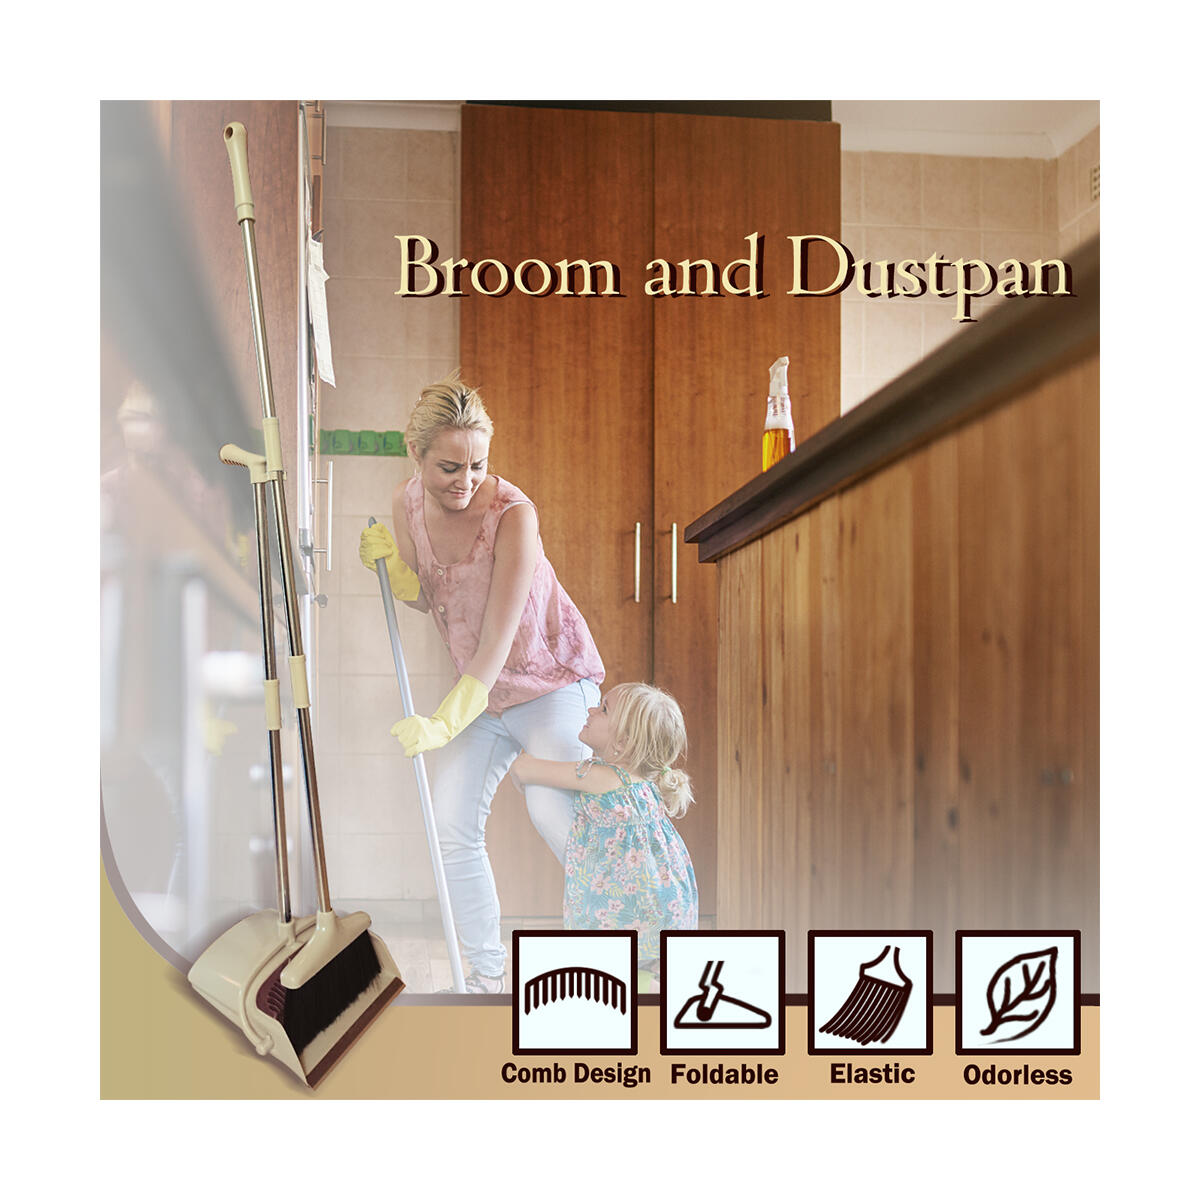 Broom and Dustpan Set Lightweight Upright Lobby Broom and Dust Pan Combo with Long Handle Outdoor Indoor for Home Kitchen Room Office(Brown)